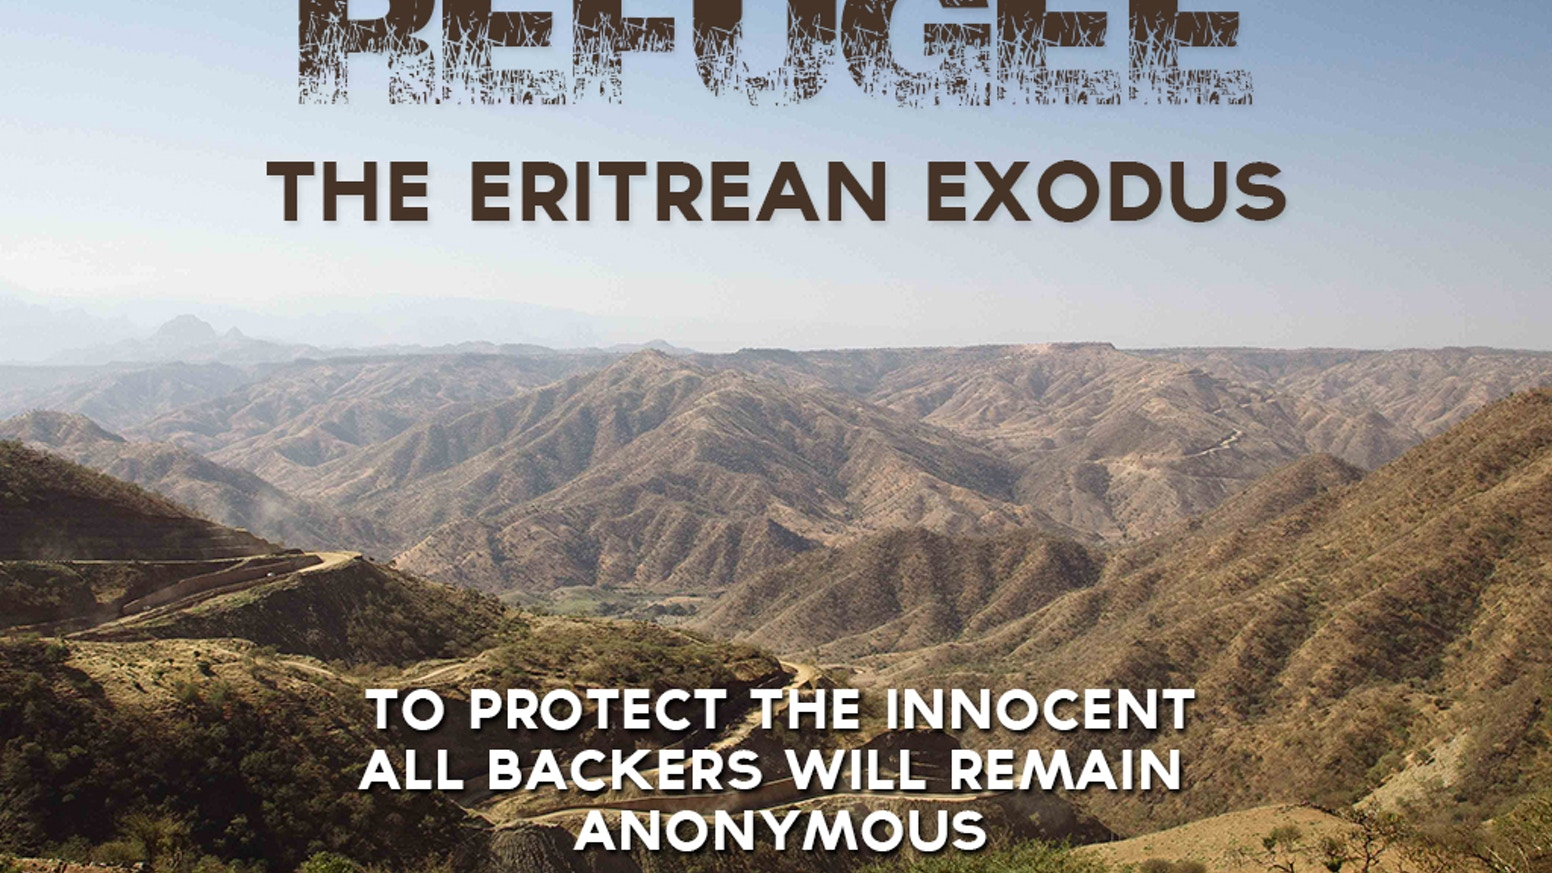 A depiction of the Eritrean refugee crisis told through first-hand accounts, expert analysis, and reflections of an American traveler.